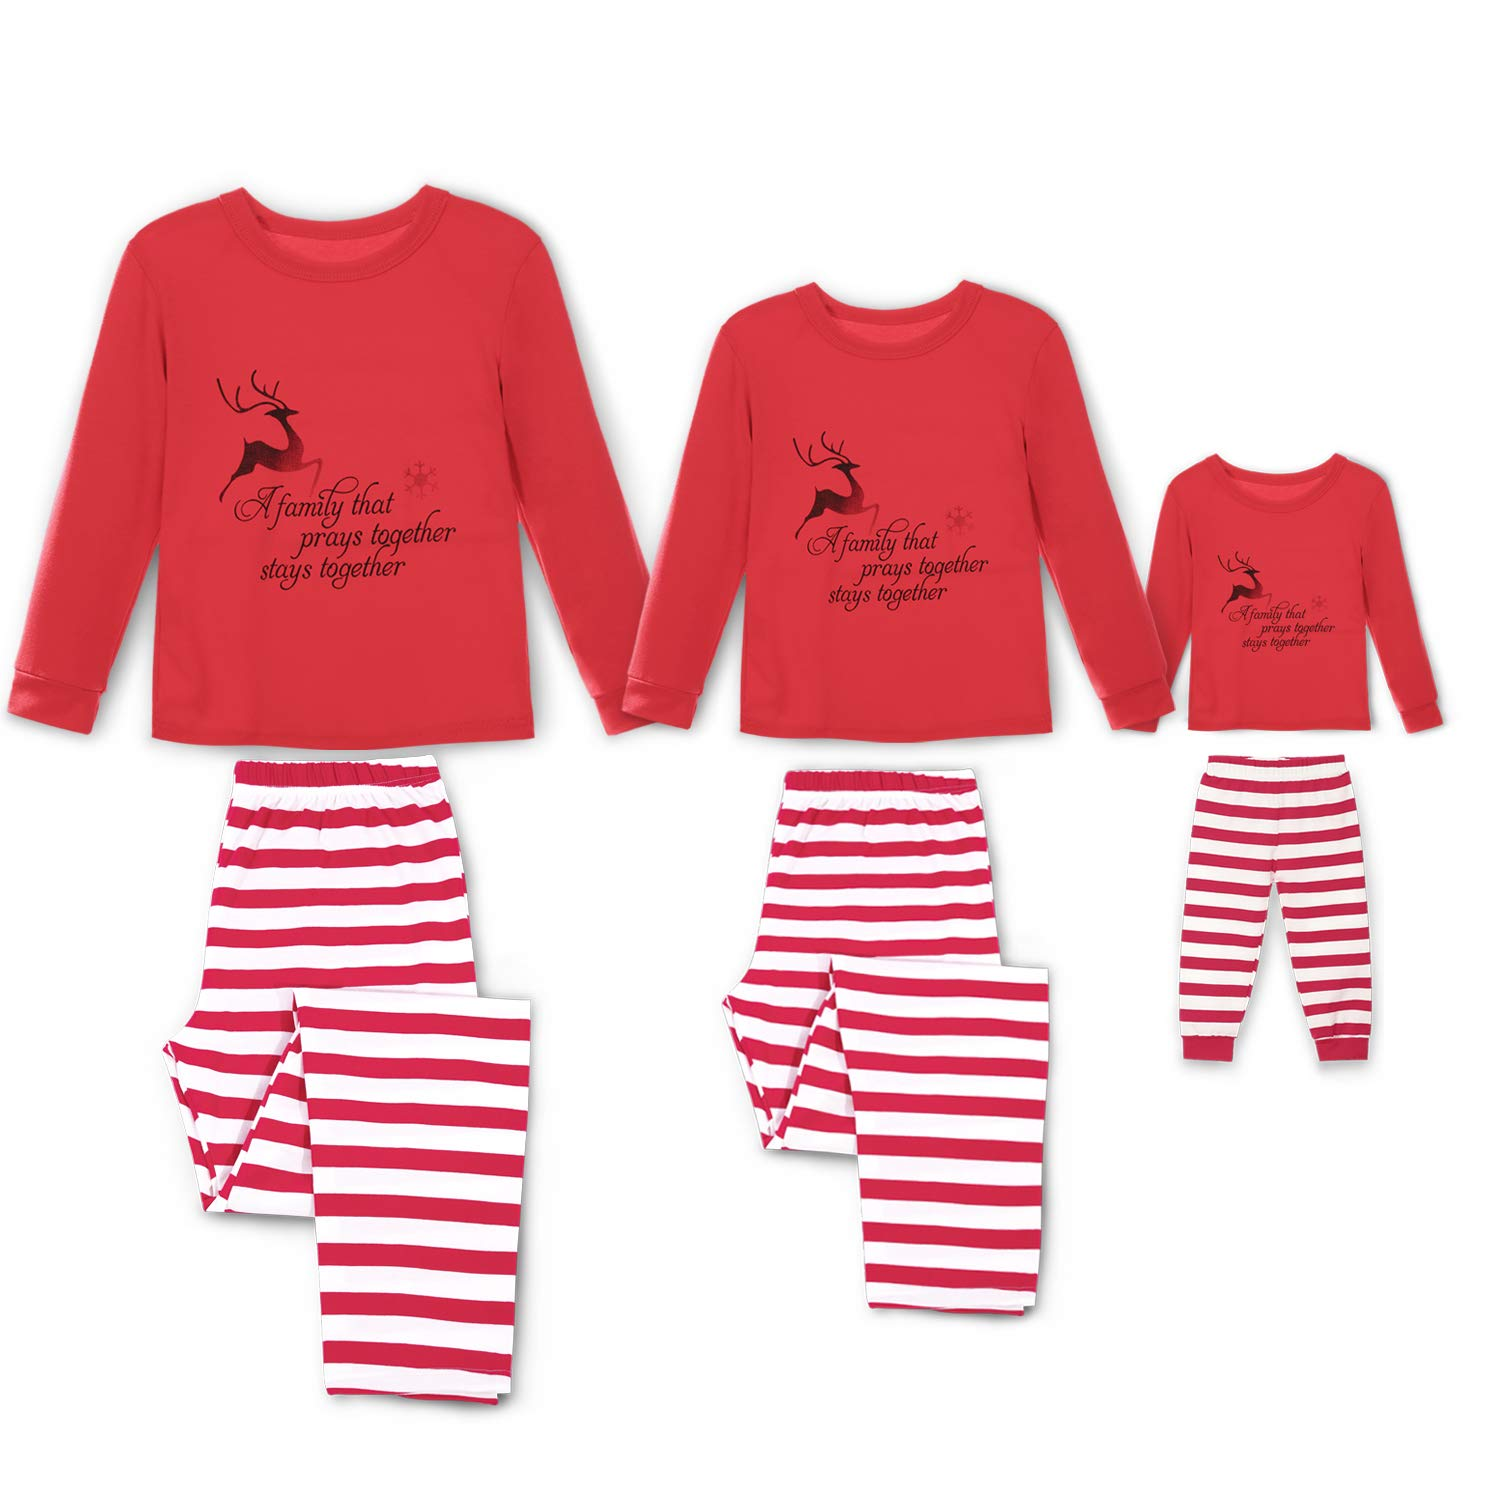 SUNNYBUY Family Christmas Pajamas Set Matching Men, Women Kids PJs Warm Tops Bottoms Classic Red Colors